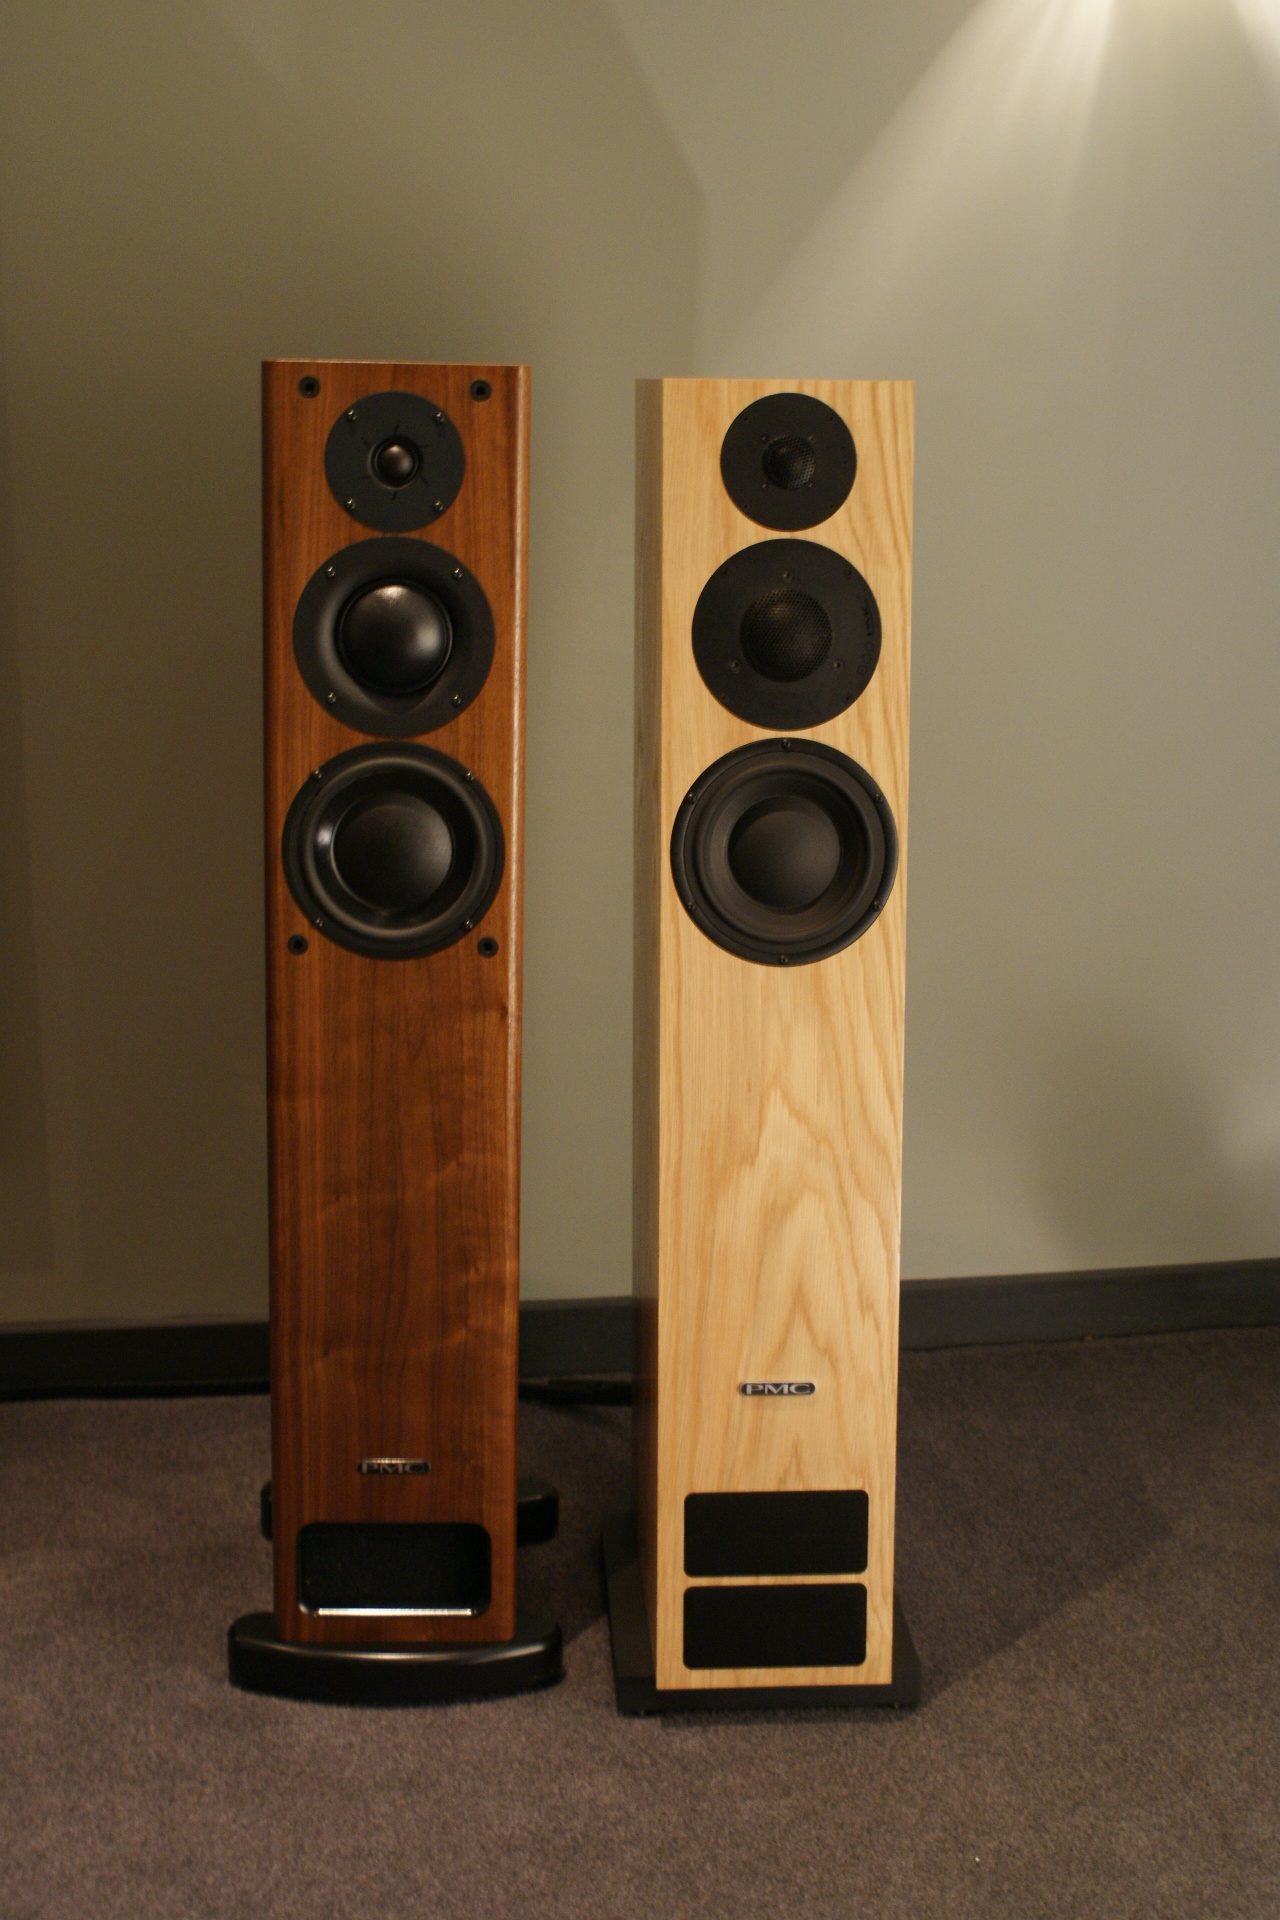 PMC Twenty:26 vs PMC OB1i speakers